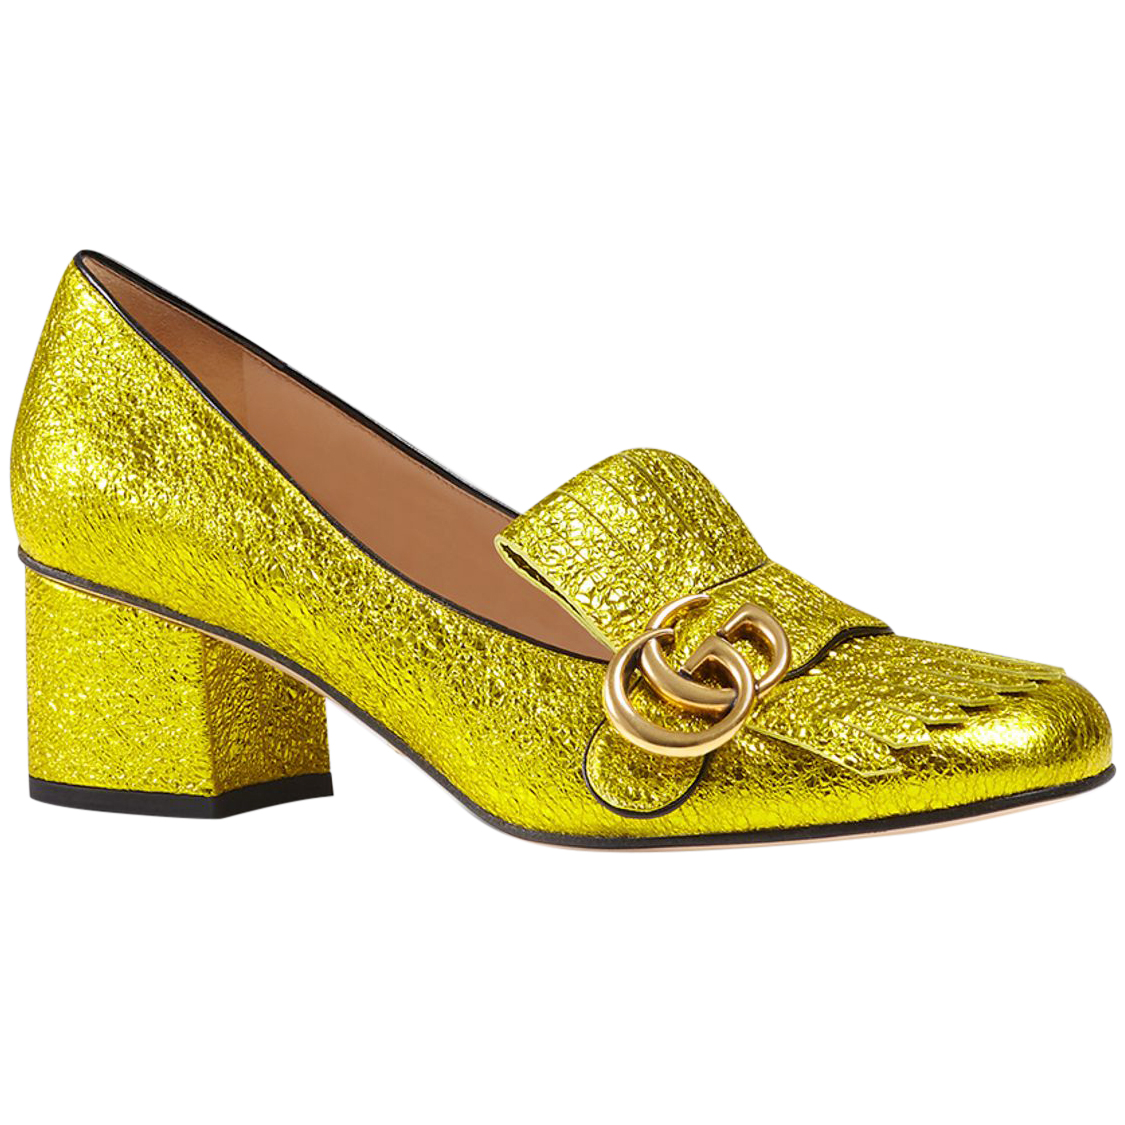 21d521460fd Gucci Marmont Gg Metallic Yellow Gold Mid Heel Shoes